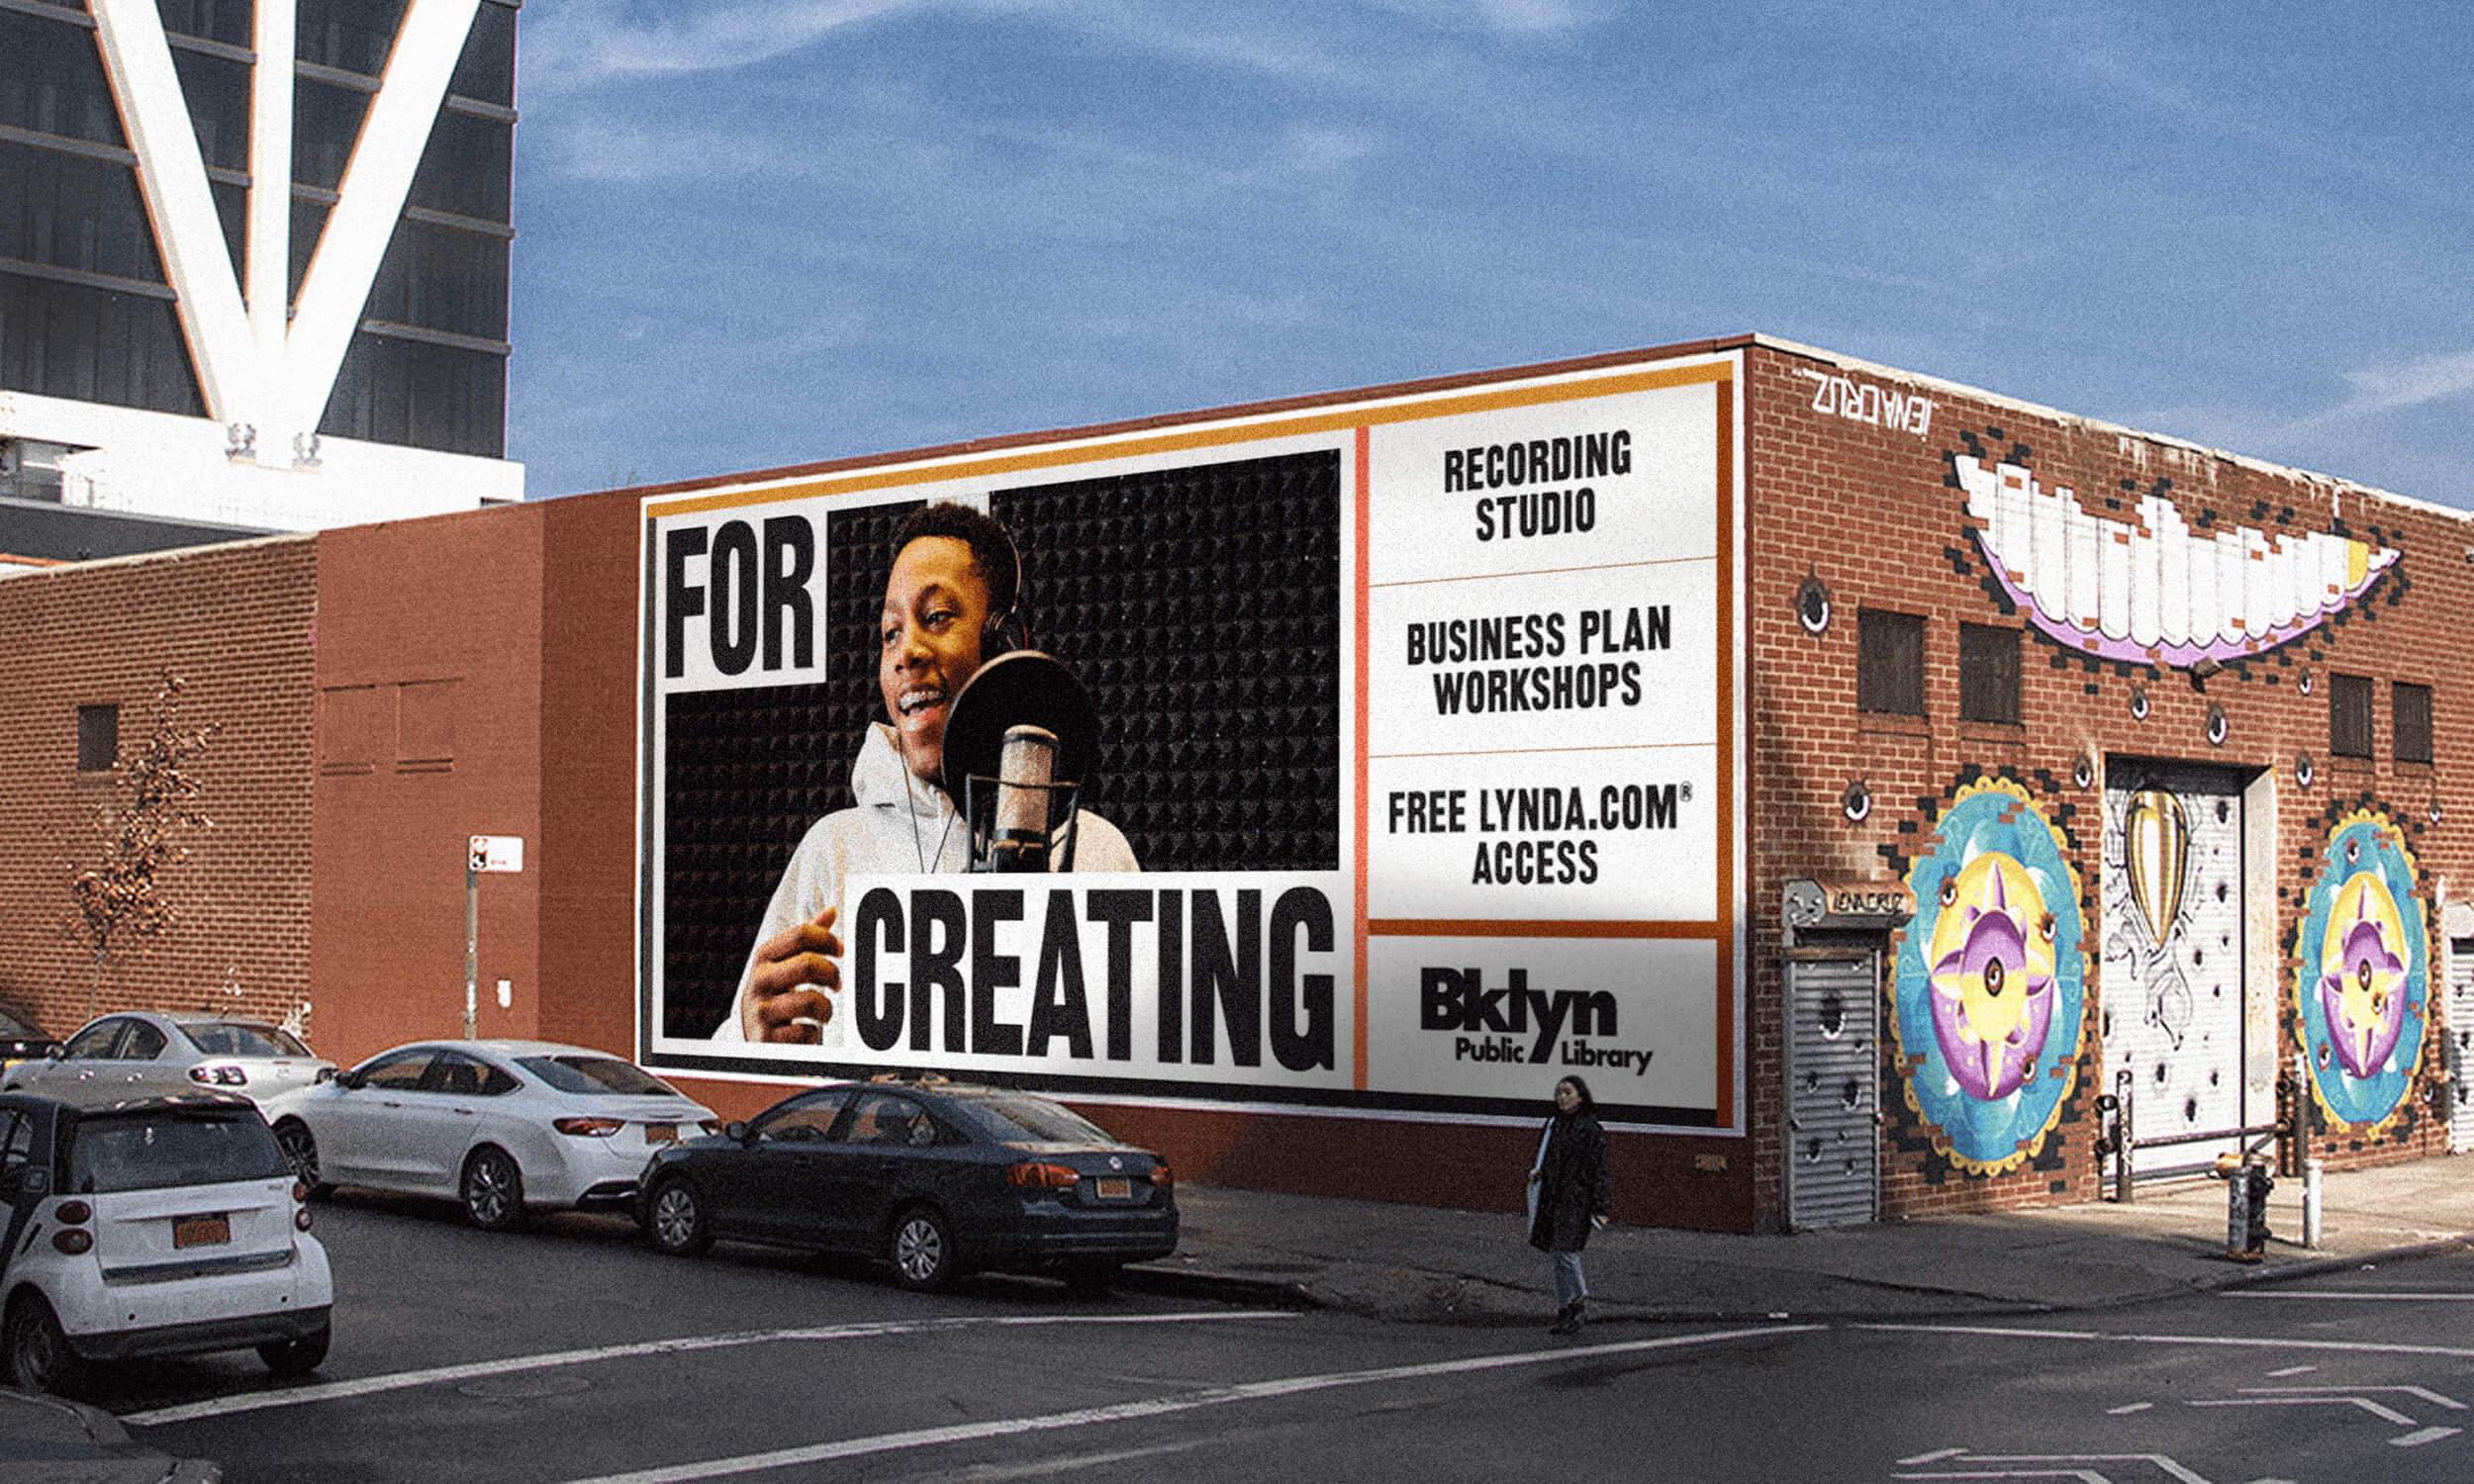 """FOr brooklyn - The """"For Brooklyn"""" advertising campaign seeks to reintroduce the Brooklyn Public Library to all of Brooklyn's 2.6 million residents by answering the question, """"What is the Library for in 2019?"""" There are currently 52 different """"For…"""" iterations in the campaign launch, with more planned. The campaign features portraits of patrons photographed by Brooklyn-based artist and street photographer Andre D. Wagner and portrait photographer Arturo Olmos.Client: Brooklyn Public LibraryRole: Junior Designer for Campaign DevelopmentStudio: Bellweather Agency"""